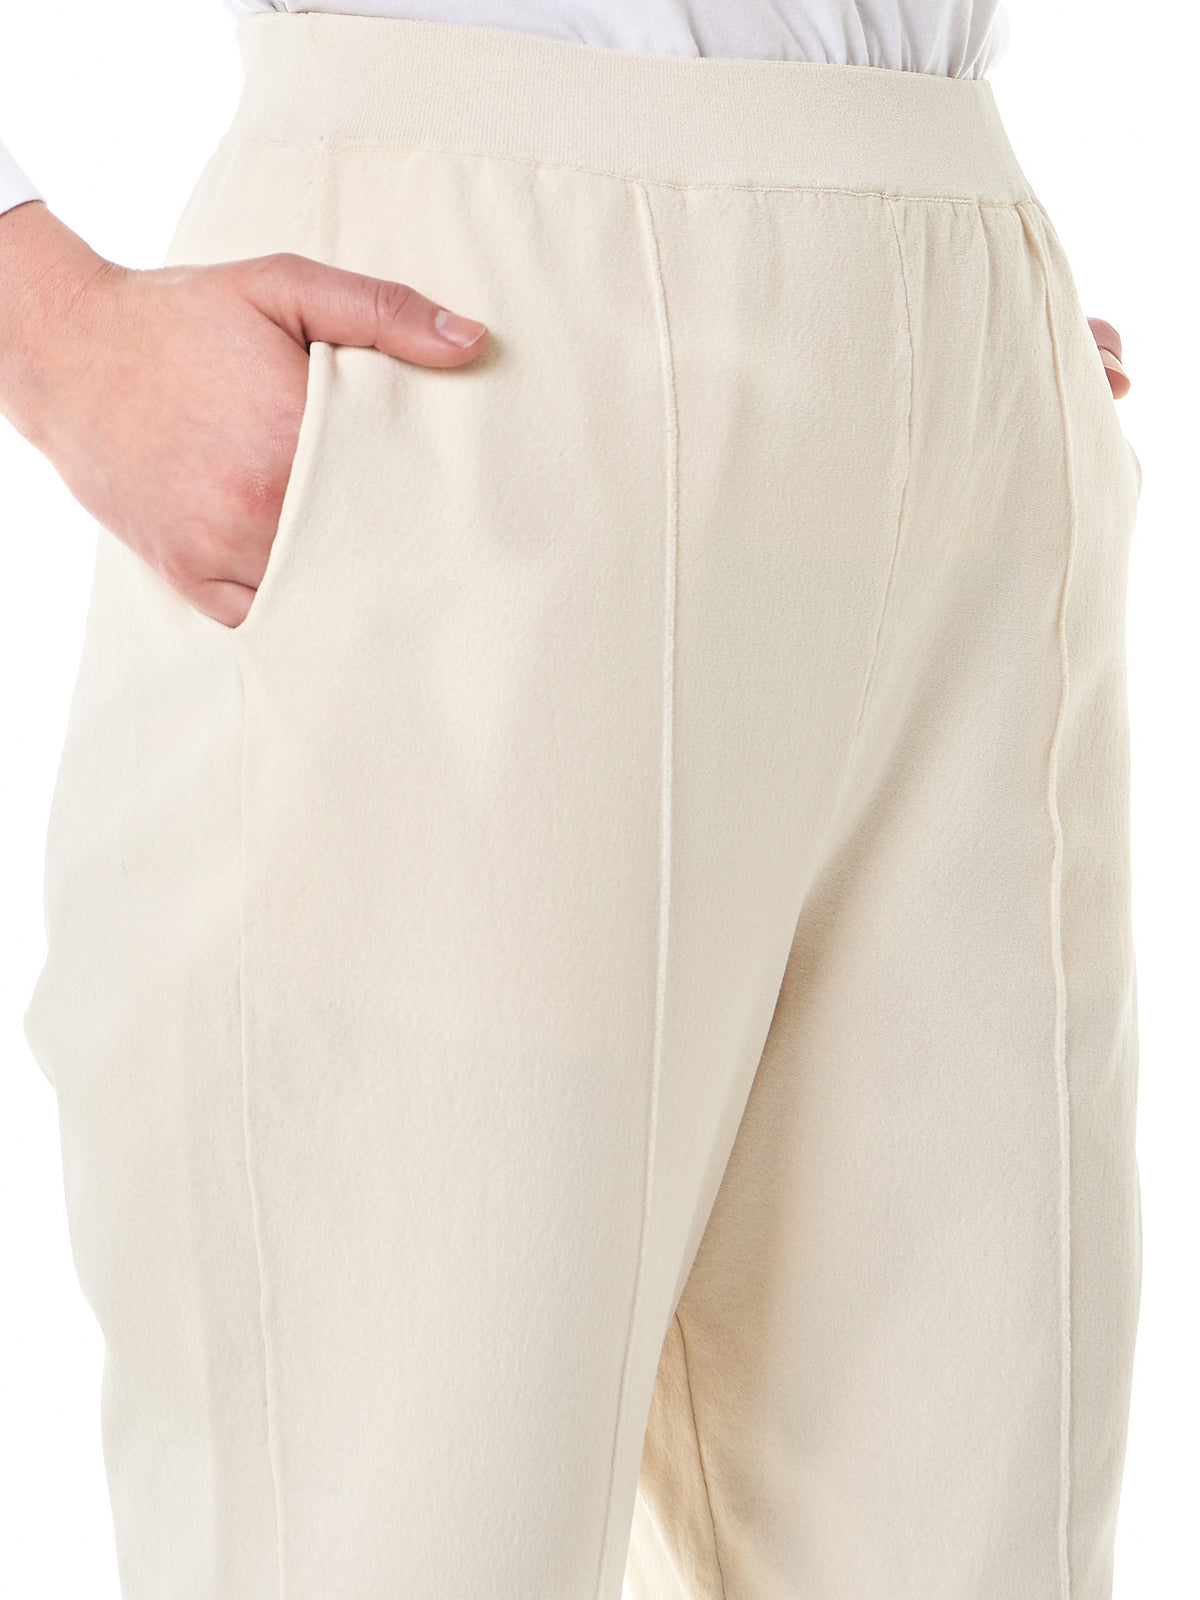 Cropped Trousers (3231-V2) - H. Lorenzo